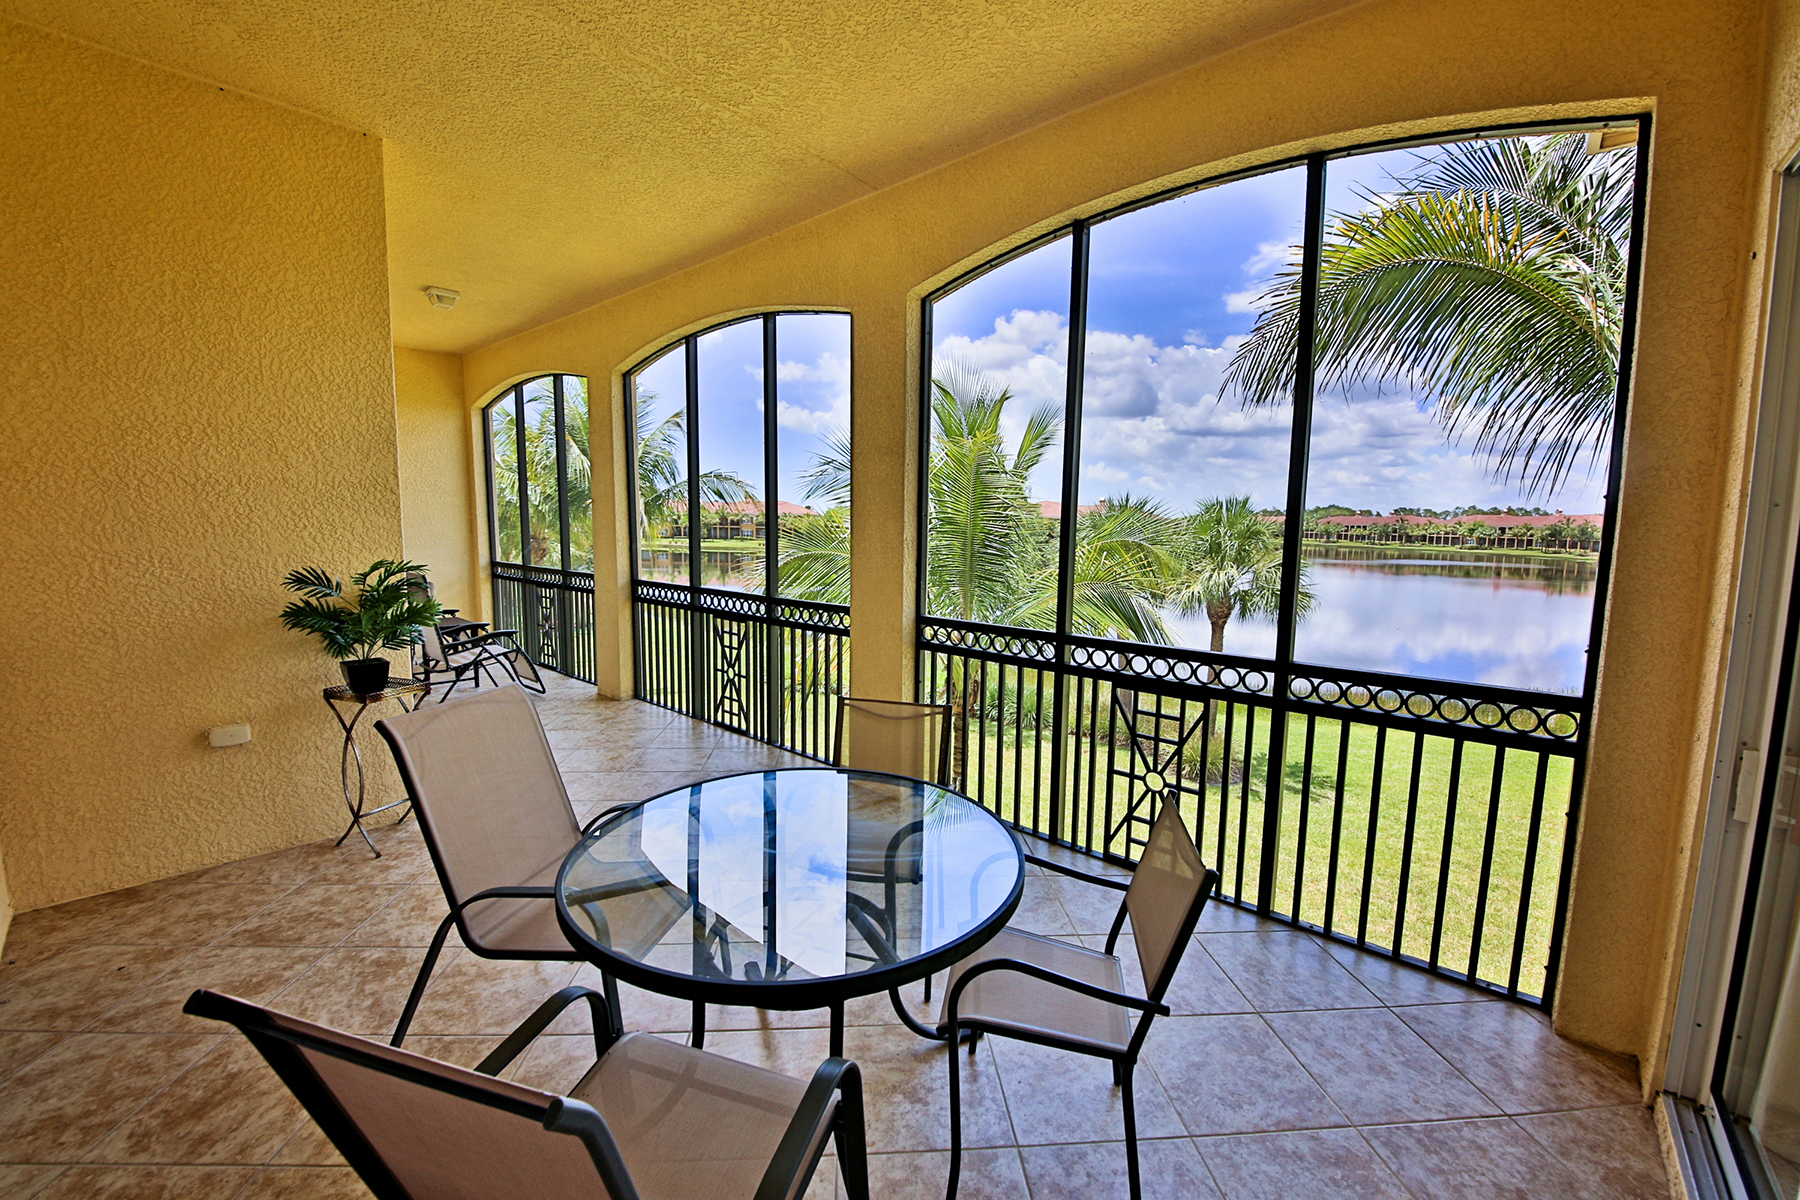 Condominium for Sale at FIDDLER'S CREEK - LAGUNA 9231 Tesoro Ln 5-203 Naples, Florida 34114 United States